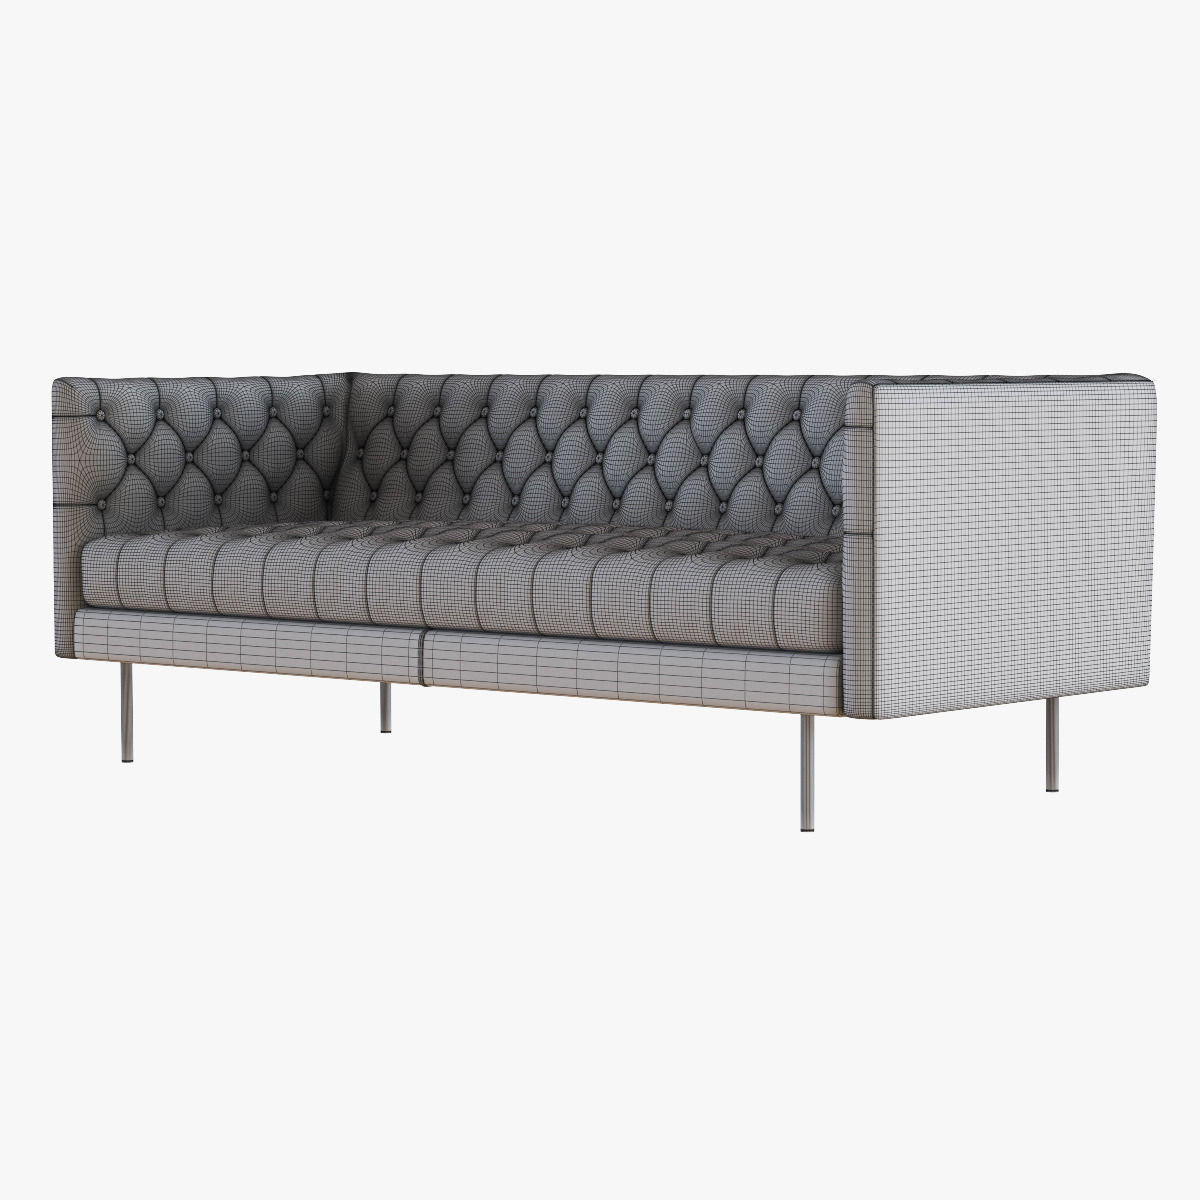 West Elm Modern Chesterfield Leather Sofa Model Max Obj Mtl Fbx 5